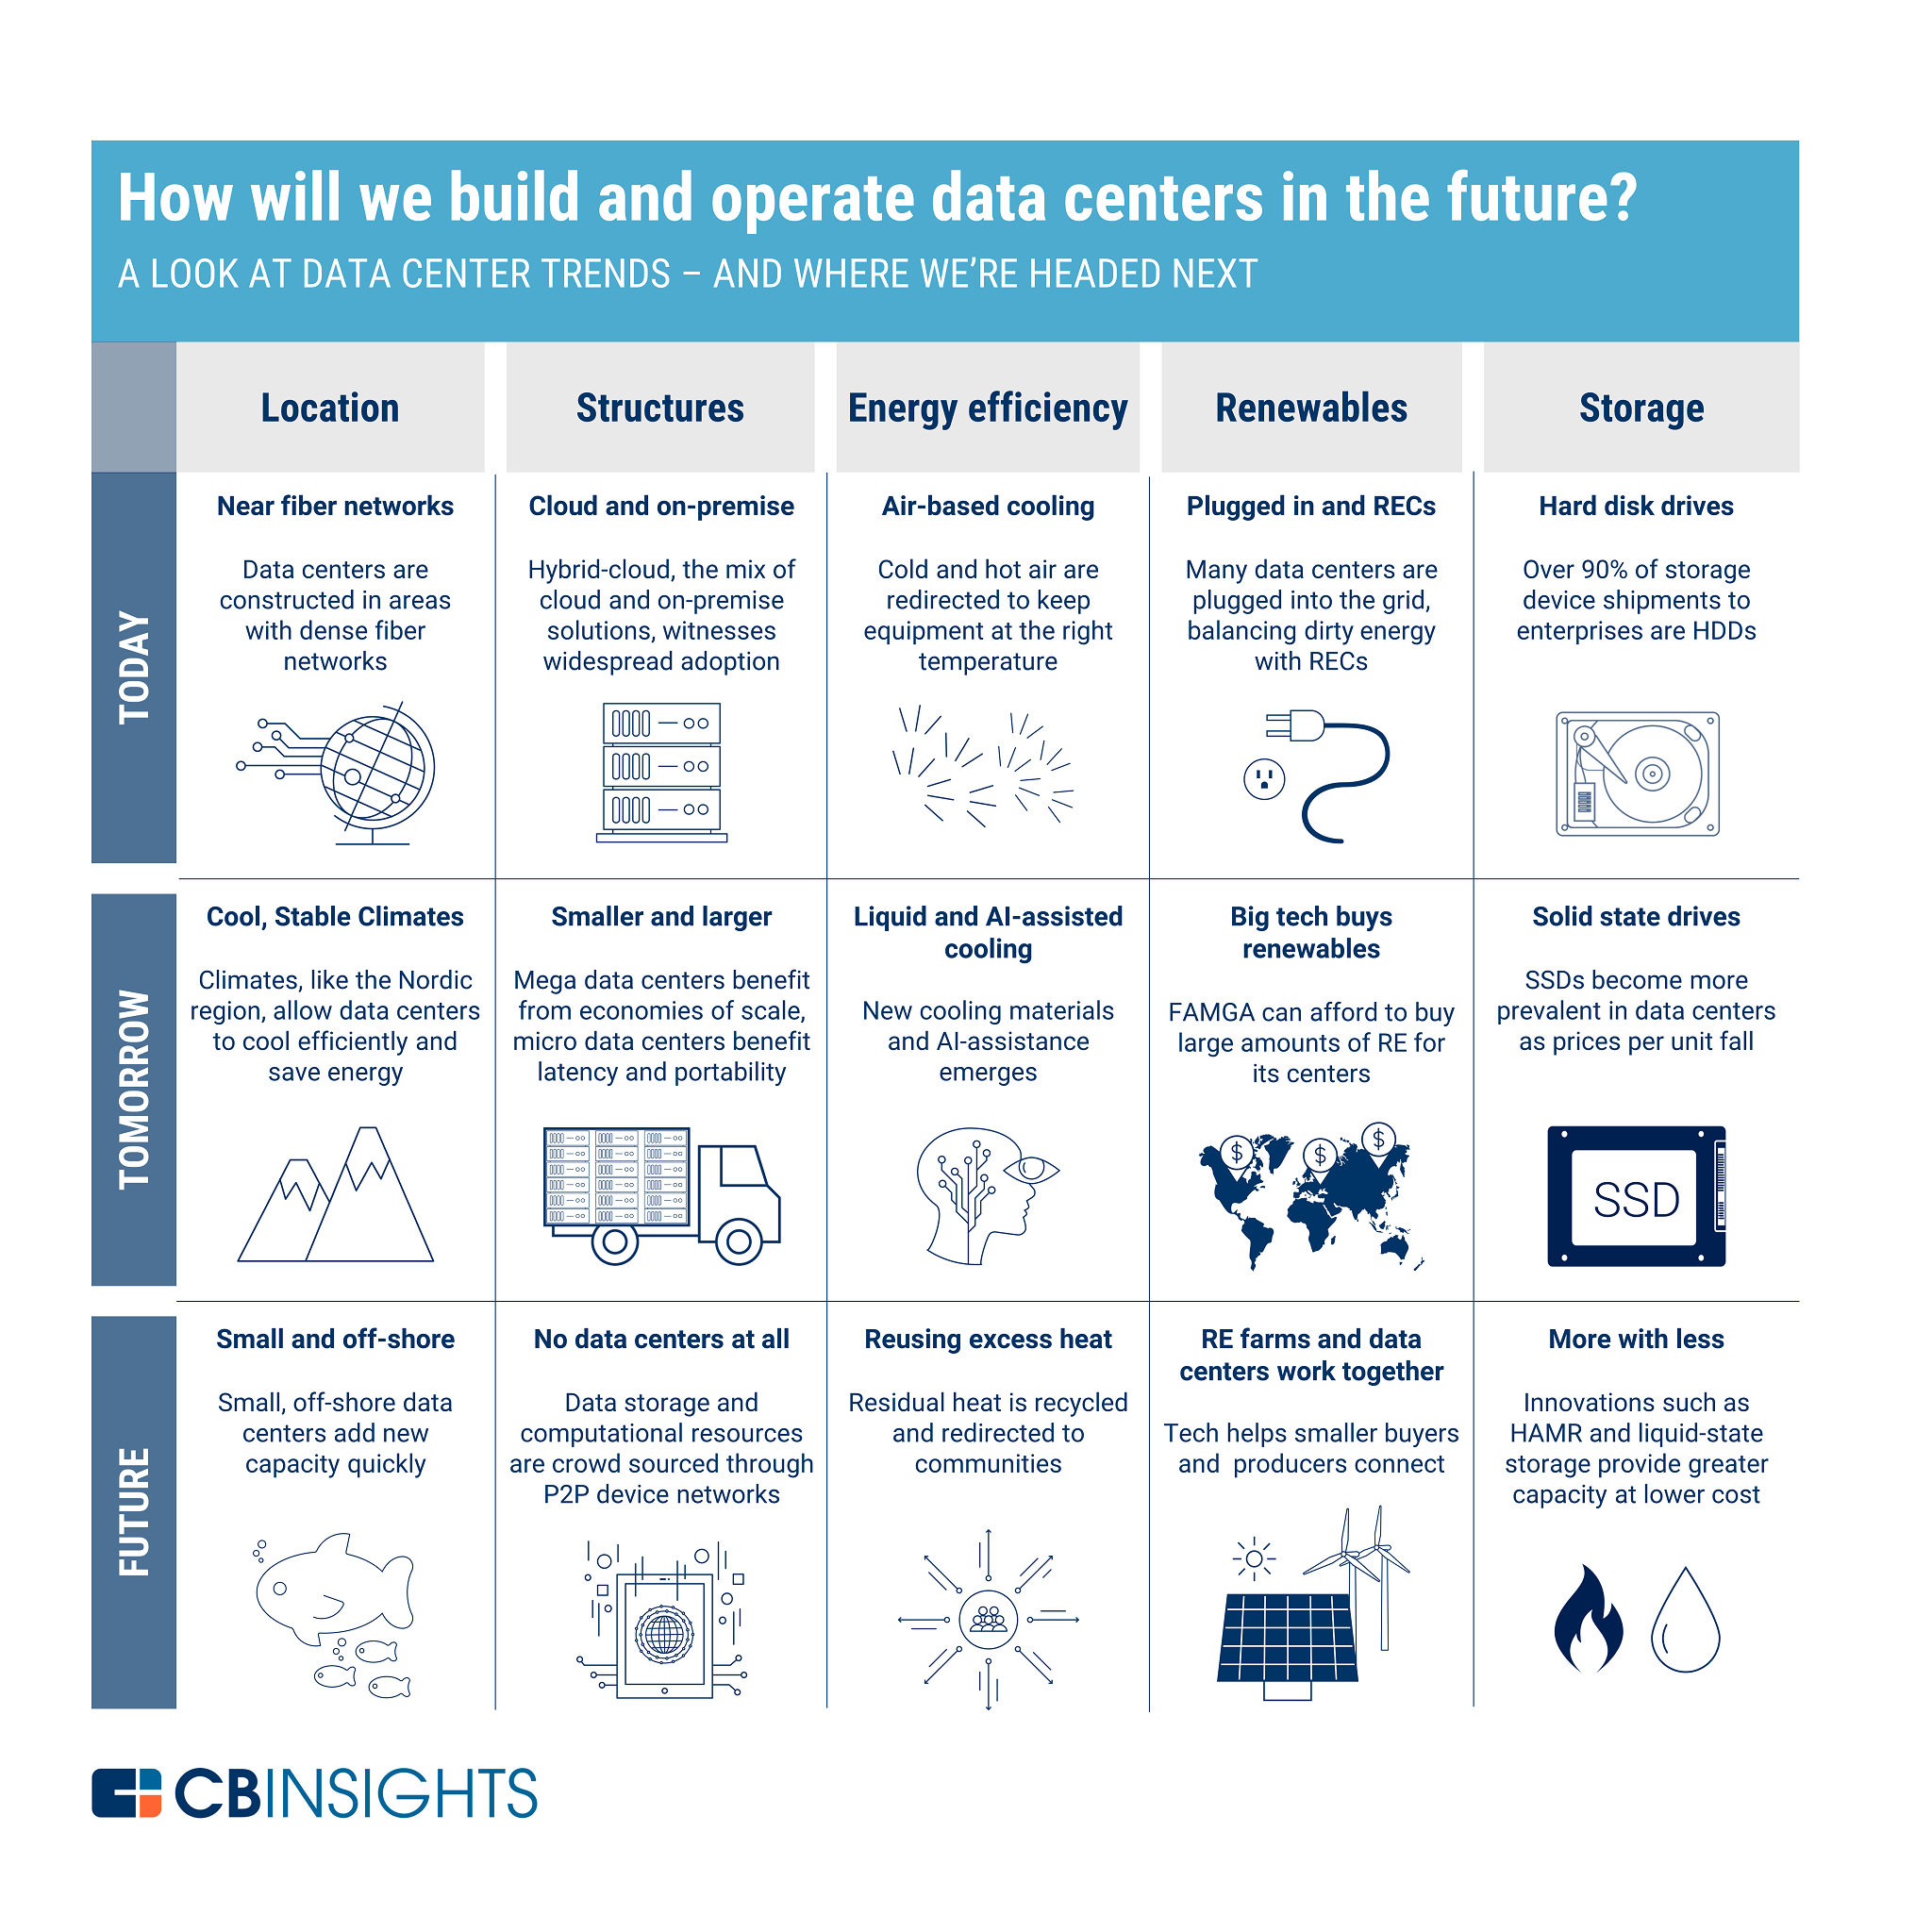 The Future Of Data Centers - CB Insights Research